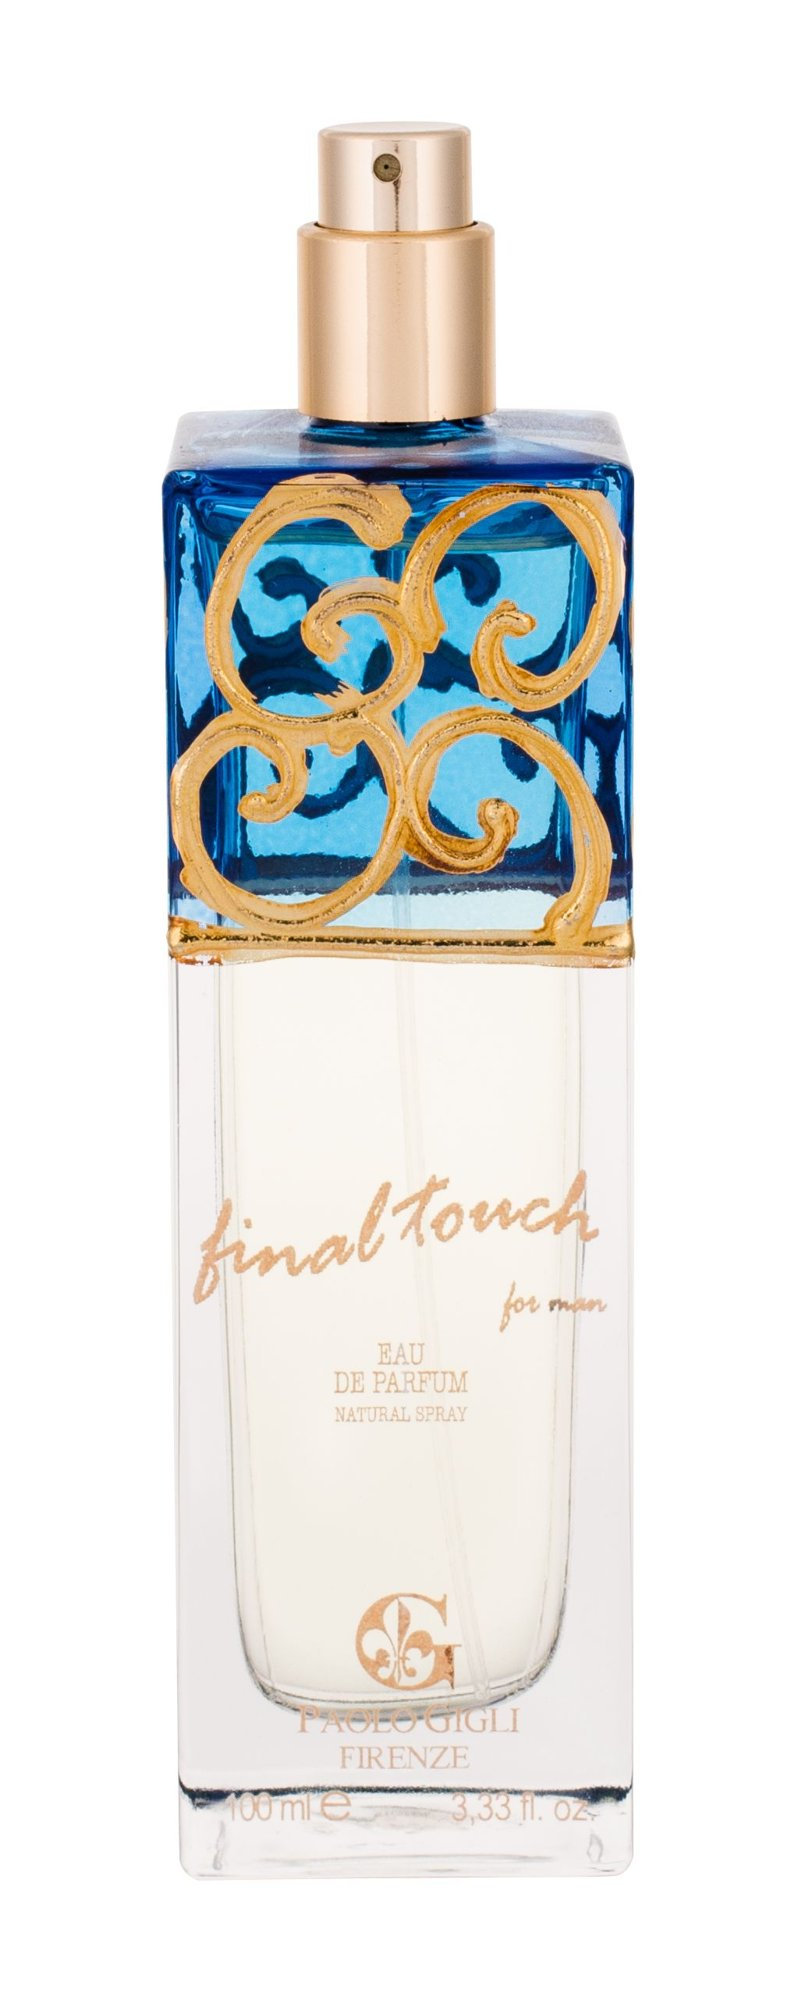 Paolo Gigli Final Touch EDP 100ml